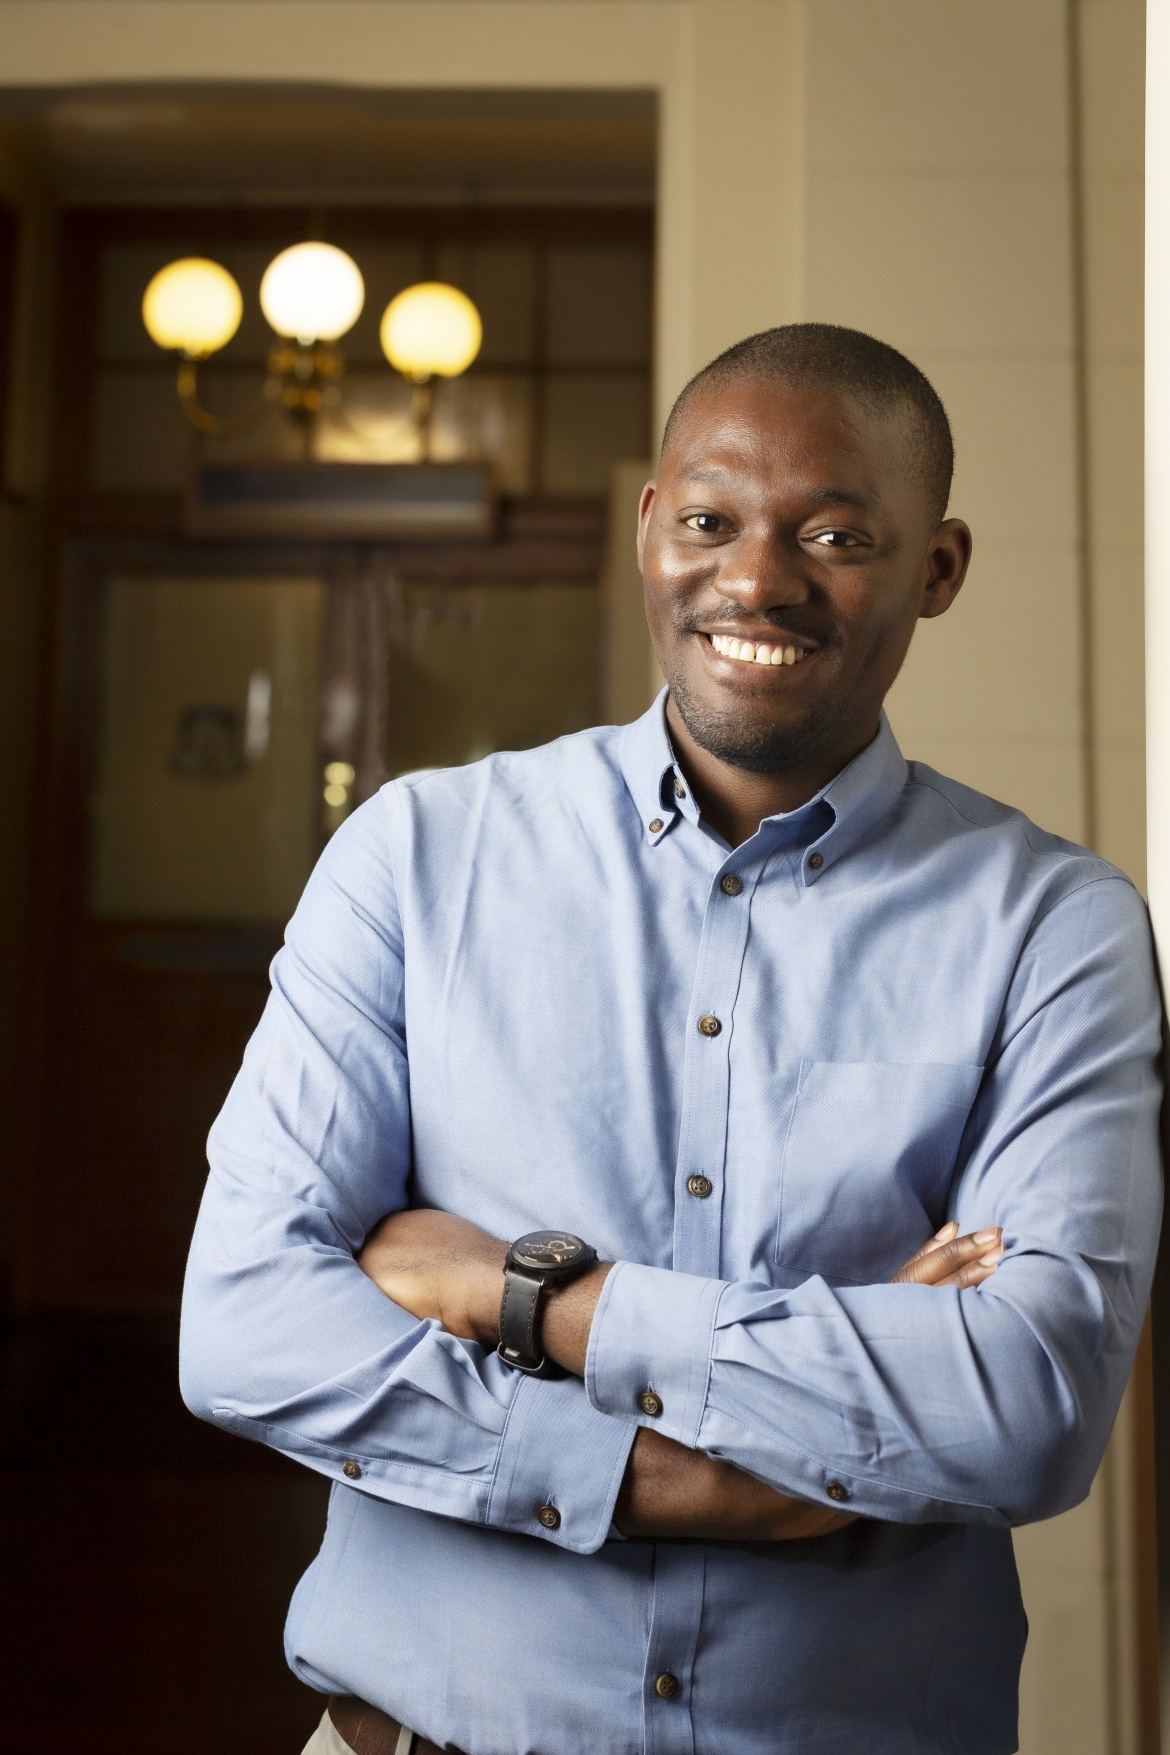 Global Health 50/50 welcomes Dr Seye Abimbola to its Advisory Council